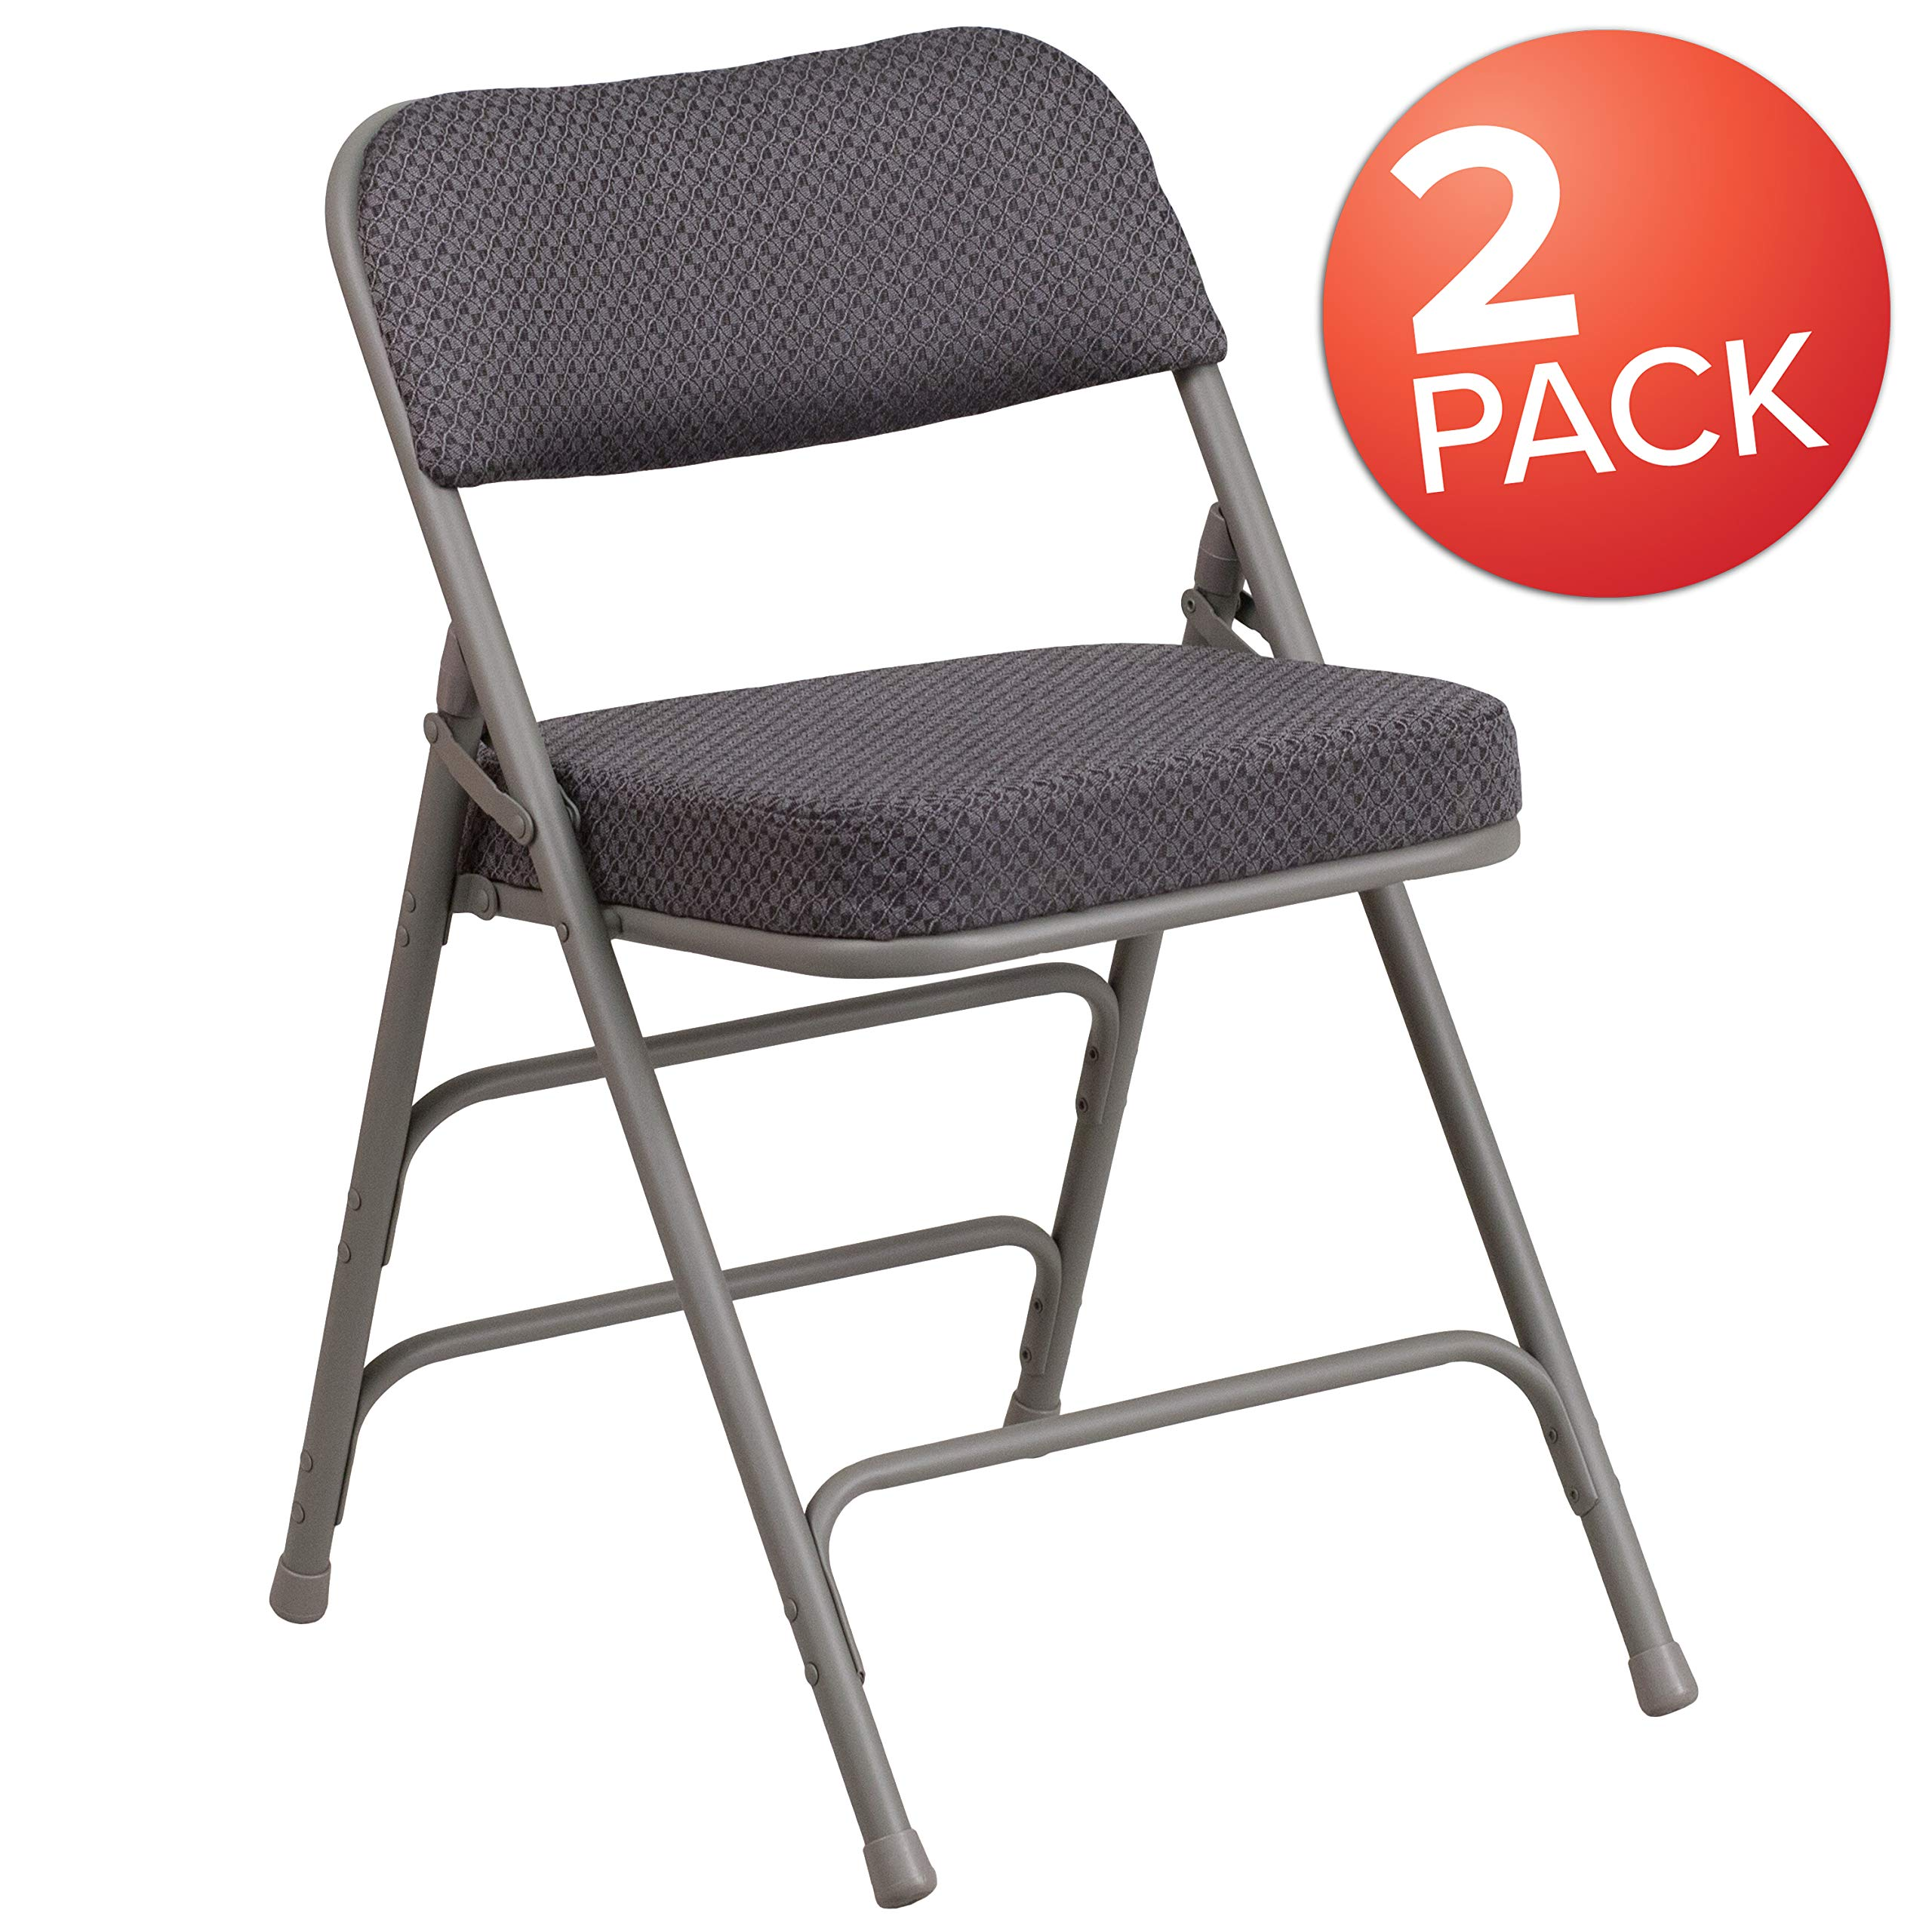 Flash Furniture 2 Pk. HERCULES Series Premium Curved Triple Braced & Double Hinged Gray Fabric Metal Folding Chair by Flash Furniture